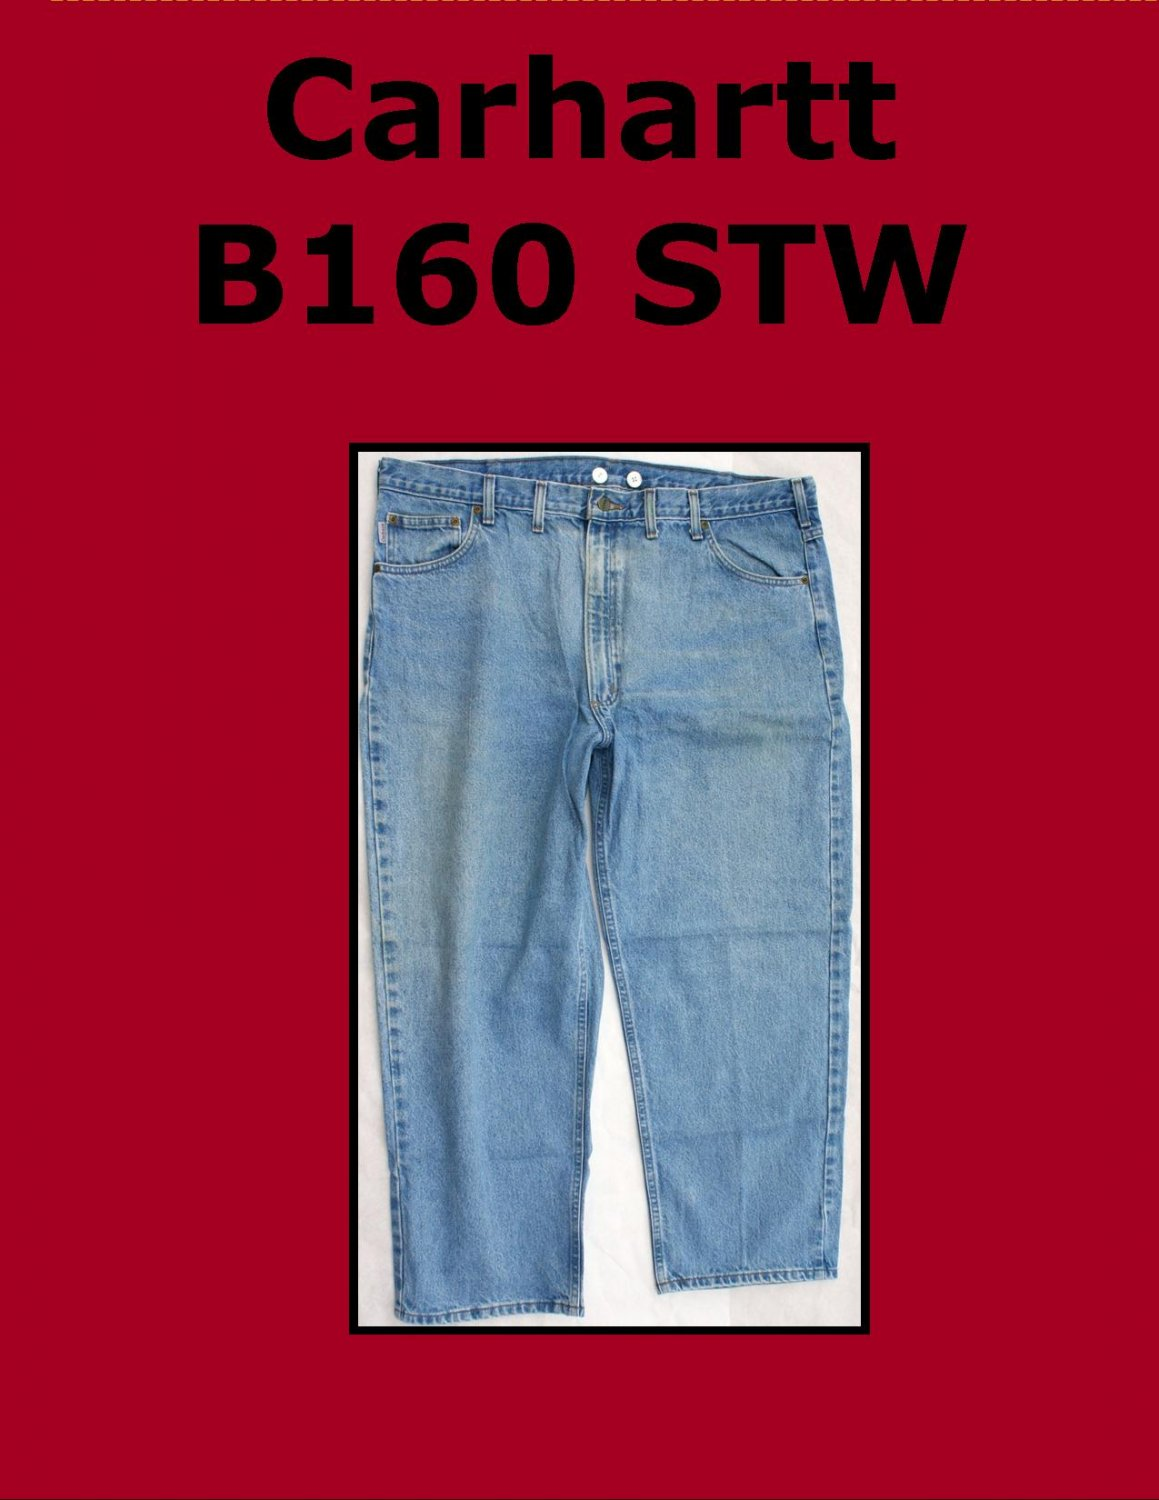 Used Carhartt B160 STW Men�s Relaxed Fit Work Jean 44 x 28